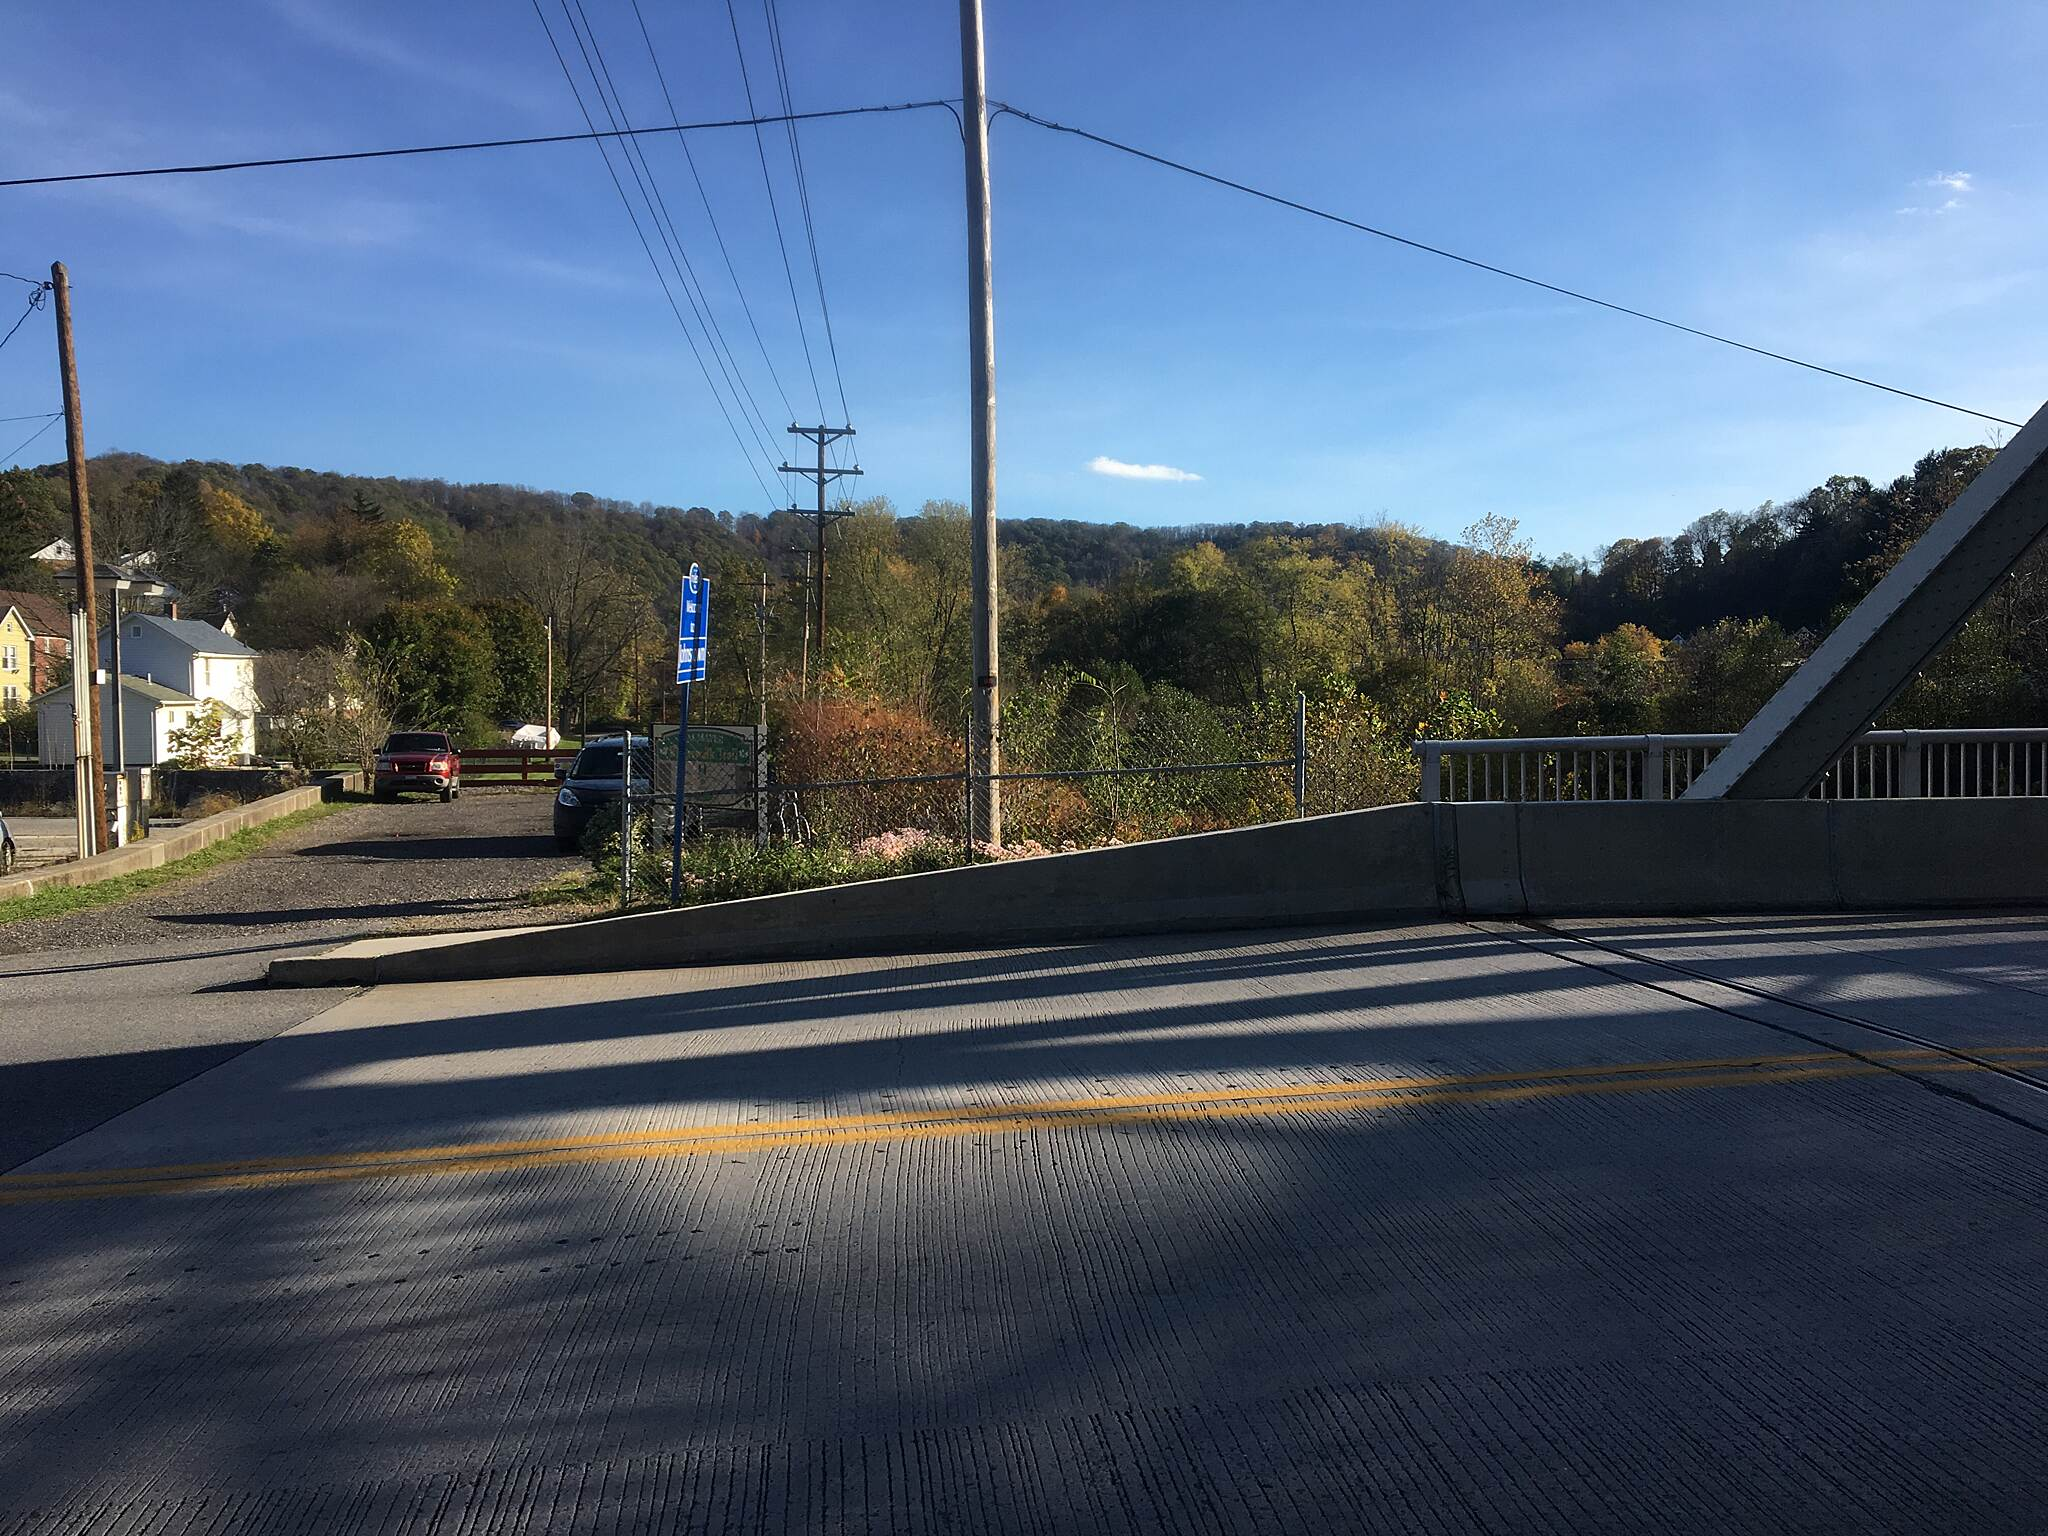 Jim Mayer Riverswalk Trailhead at Bridge Street Riverwalk trailhead at Bridge Street in Johnstown.  Crossing the bridge over the Stoney Creek River will put you in Ferndale.  28OCT16